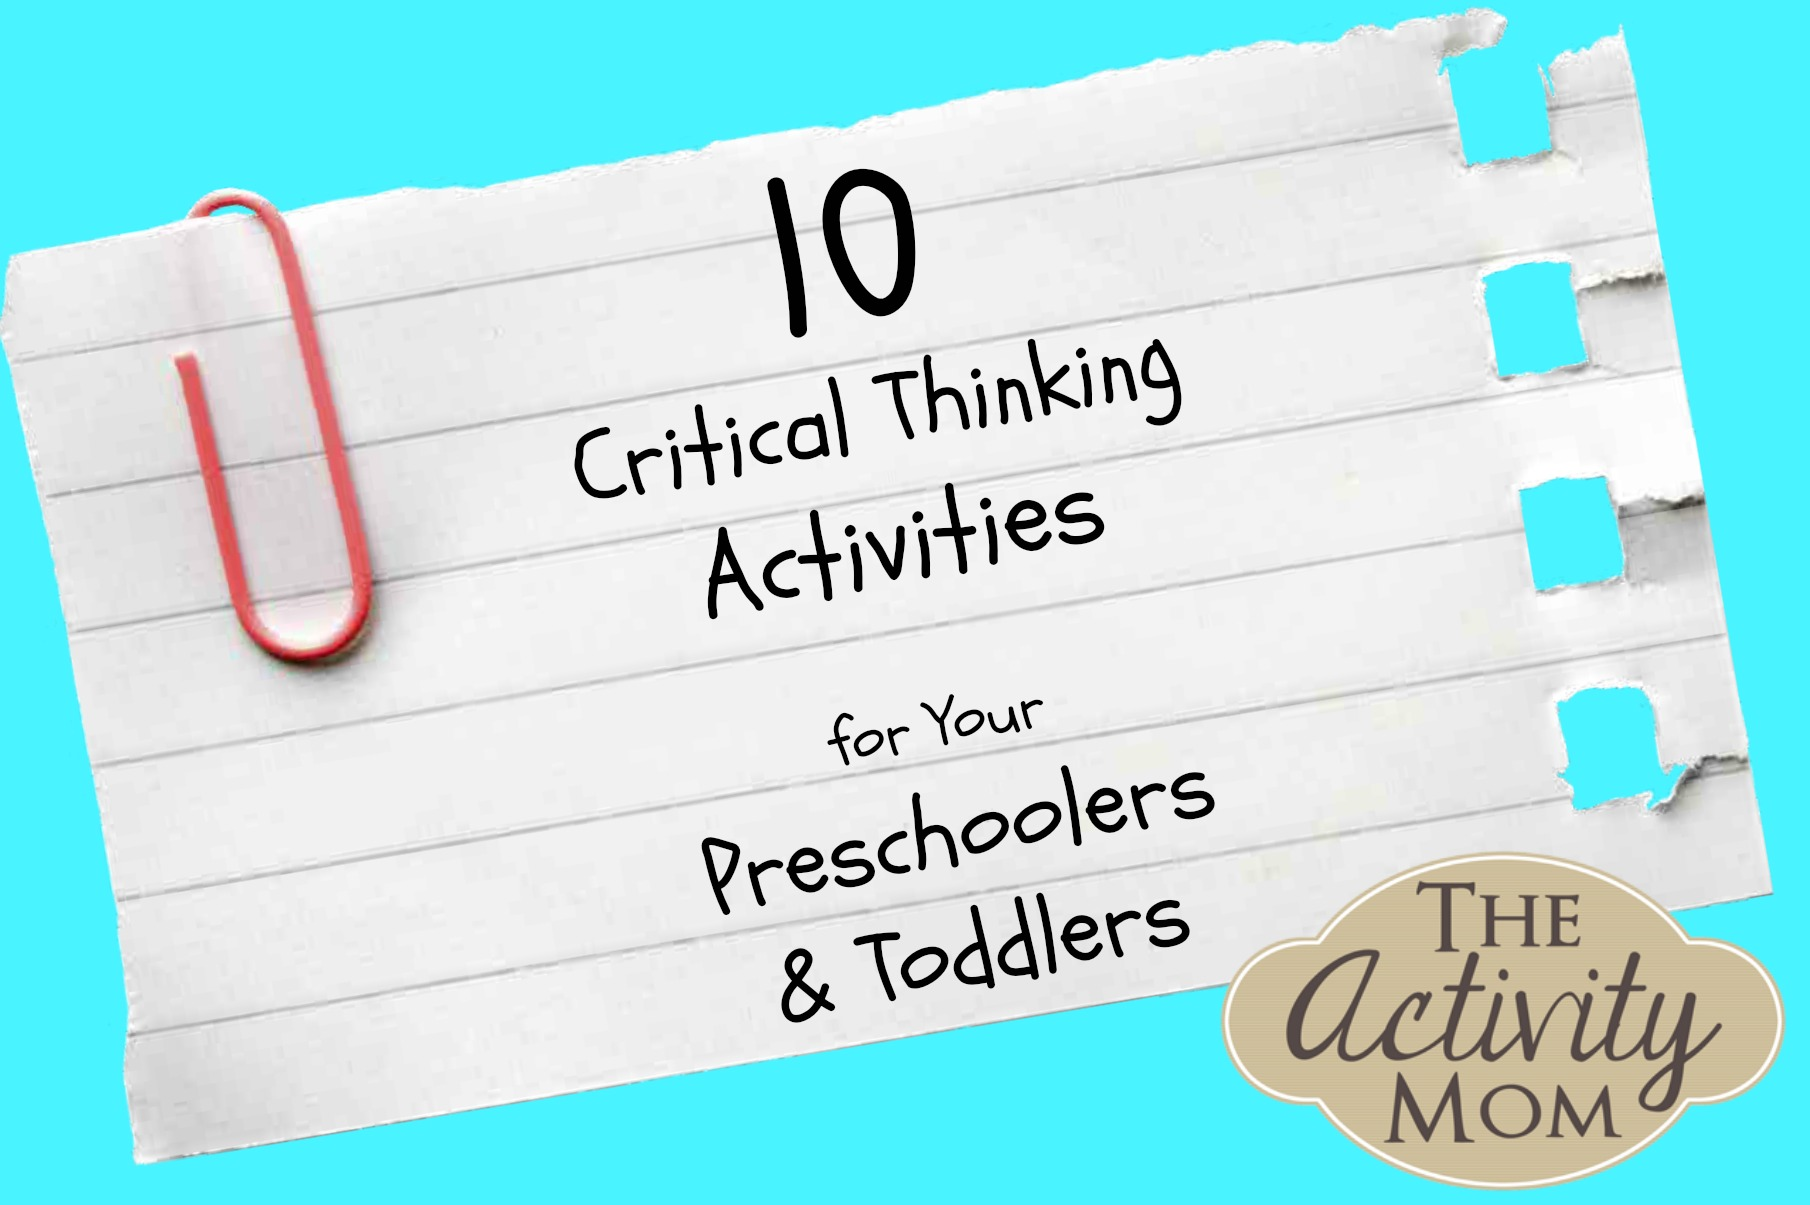 FREE Award Winning Critical Thinking Puzzles  Sign Up Today  Delivered  weekly to your Homeschool Den